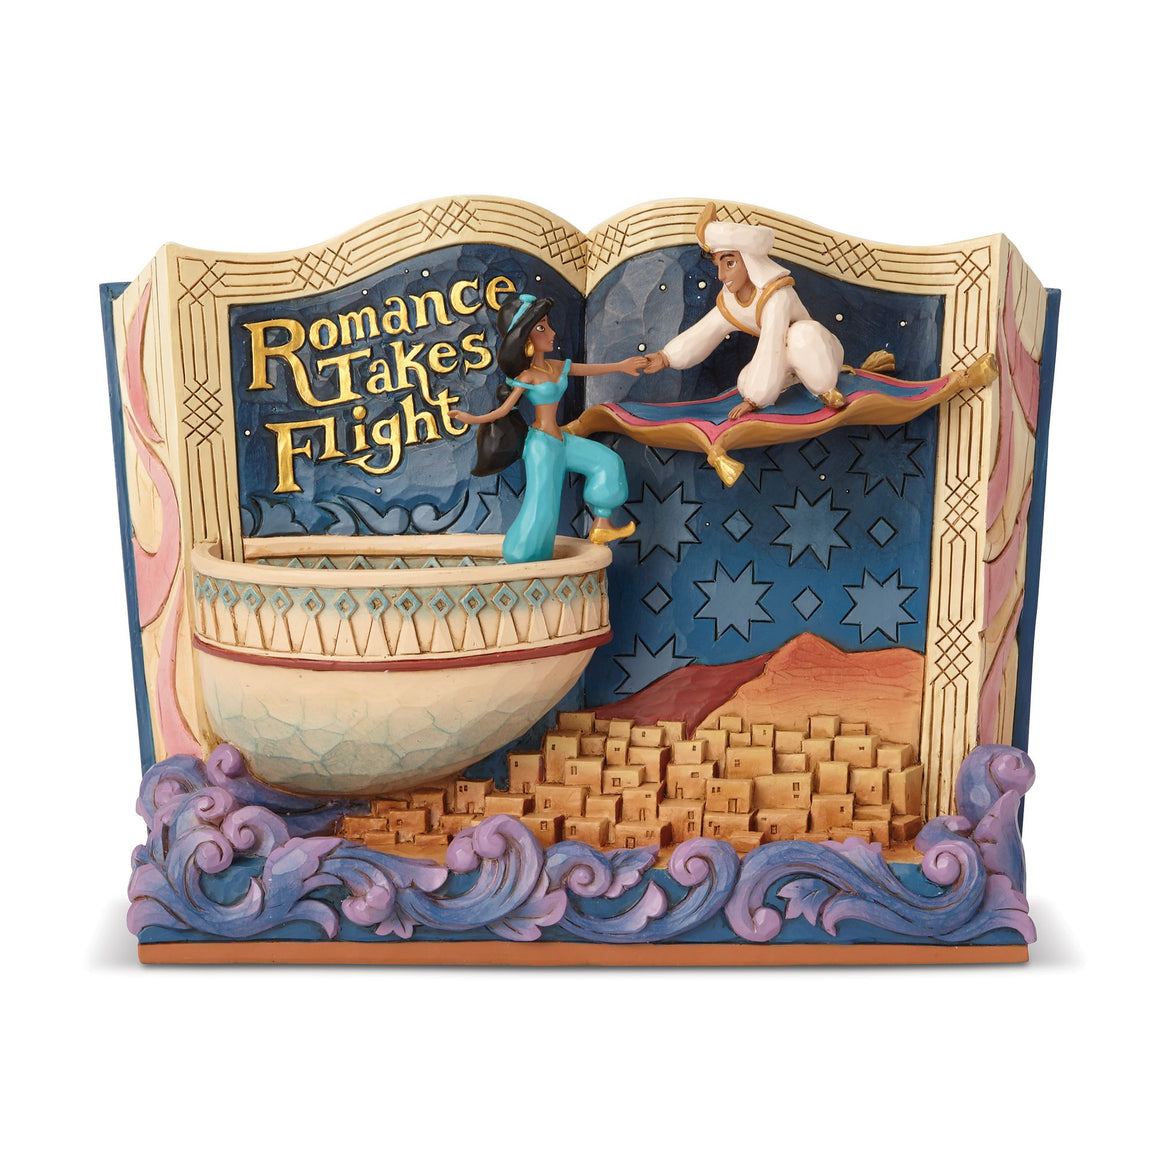 Romance Takes Flight )Storybook Aladdin Figurine)- Disney Traditions by Jim Shore